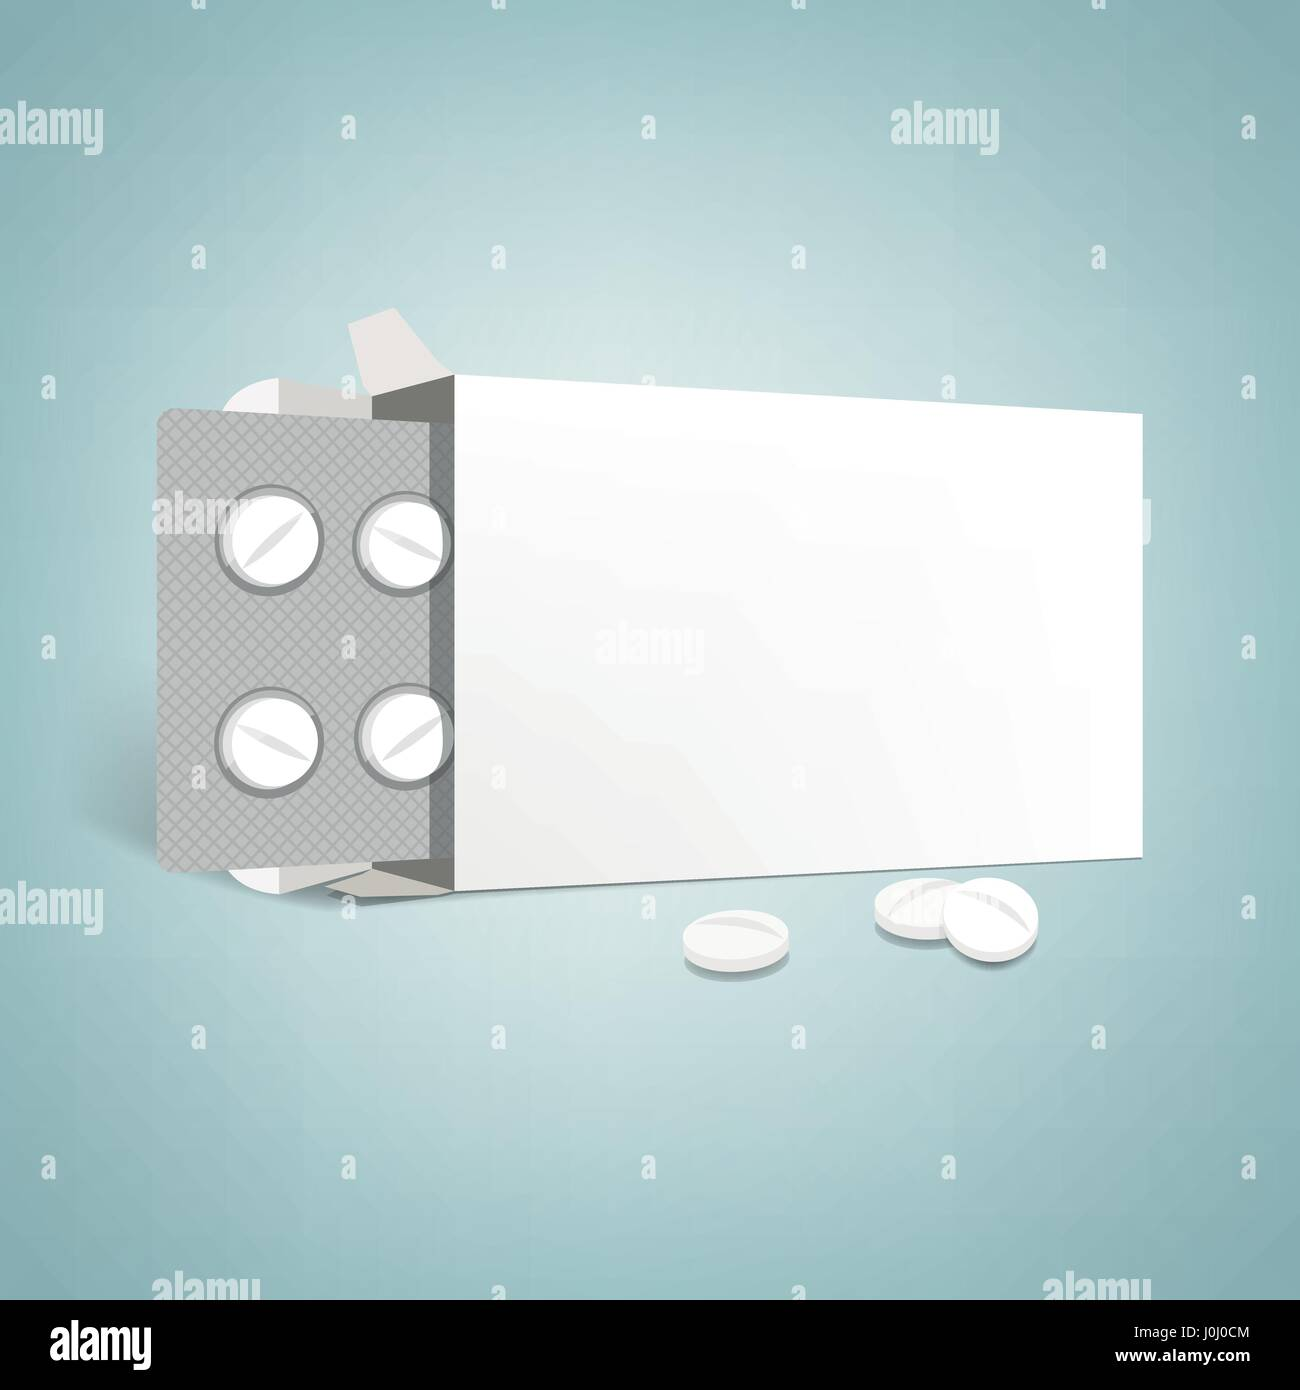 Oral Contraceptives Stock Photos & Oral Contraceptives Stock Images ...